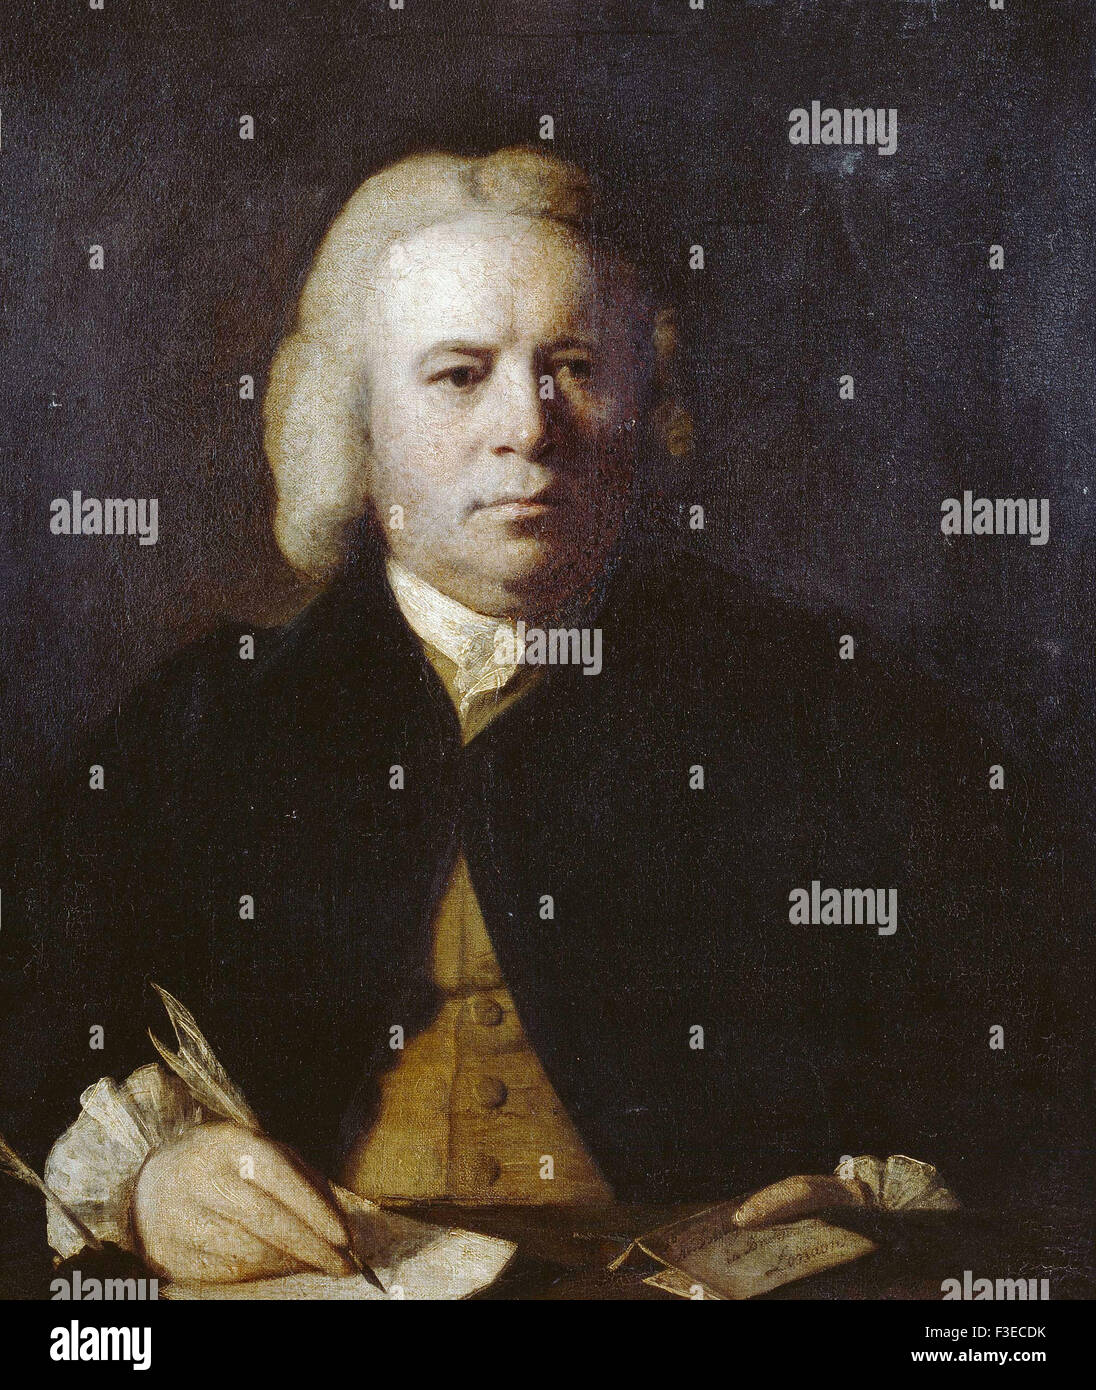 Sir Joshua Reynolds - Robert Dodsley - Stock Image